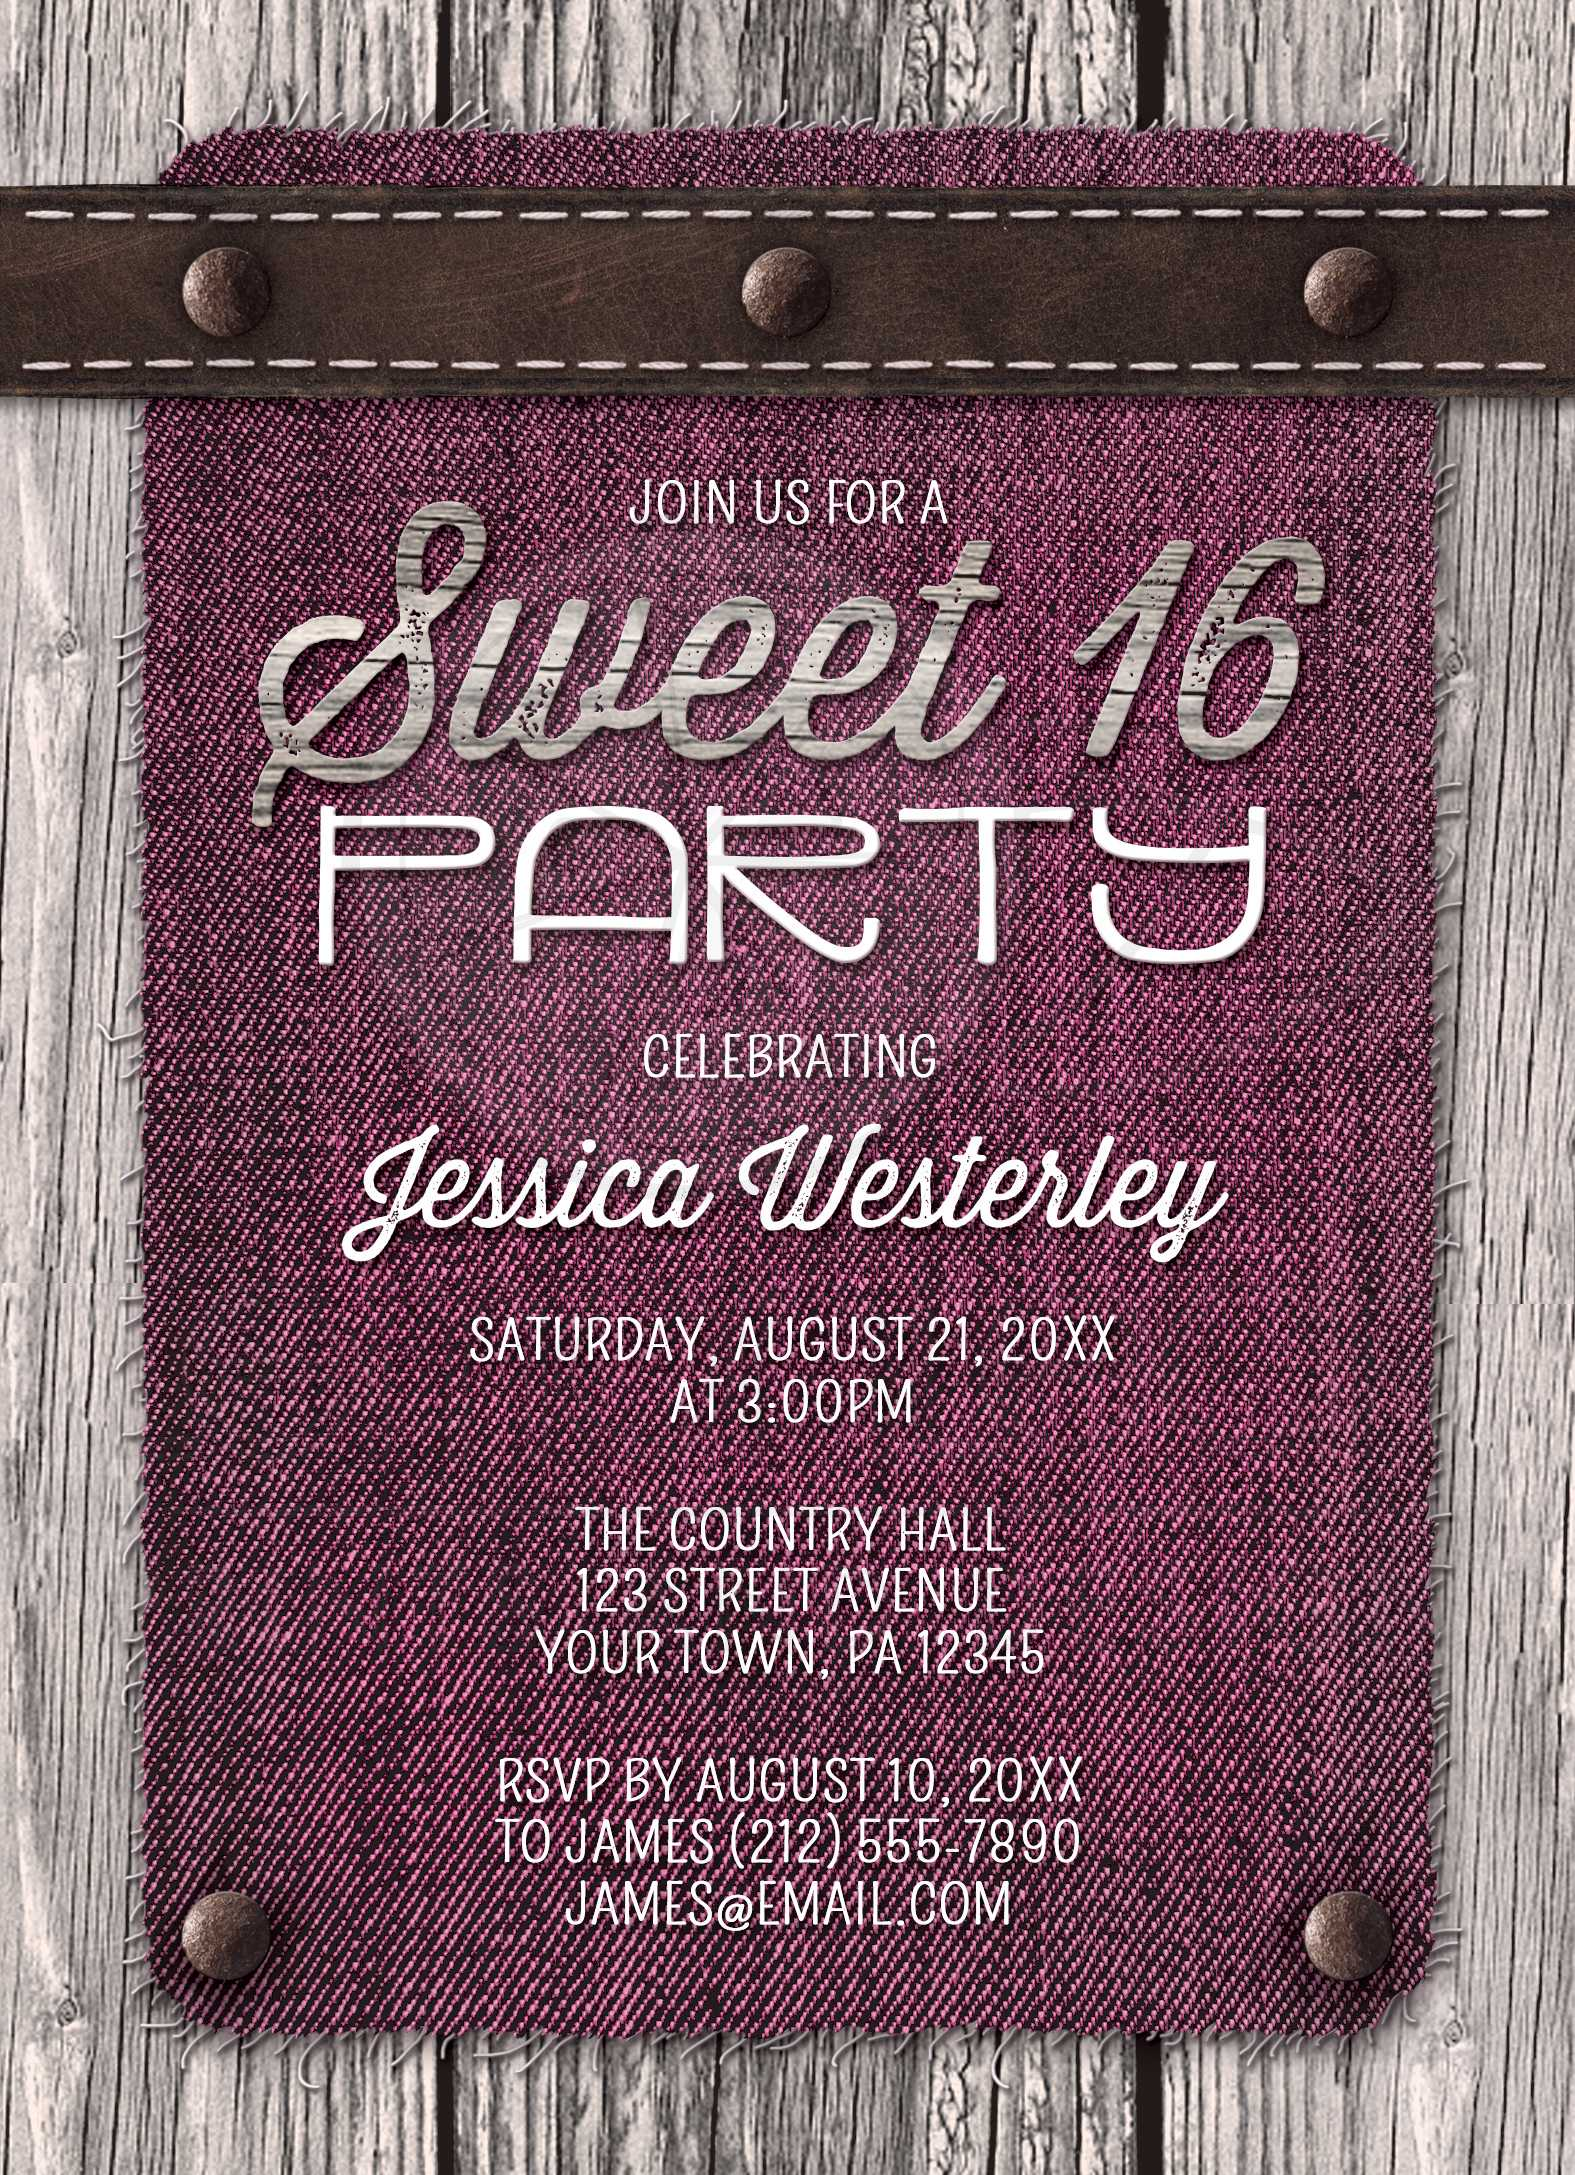 sweet 16 party invitations pink denim wood leather rustic